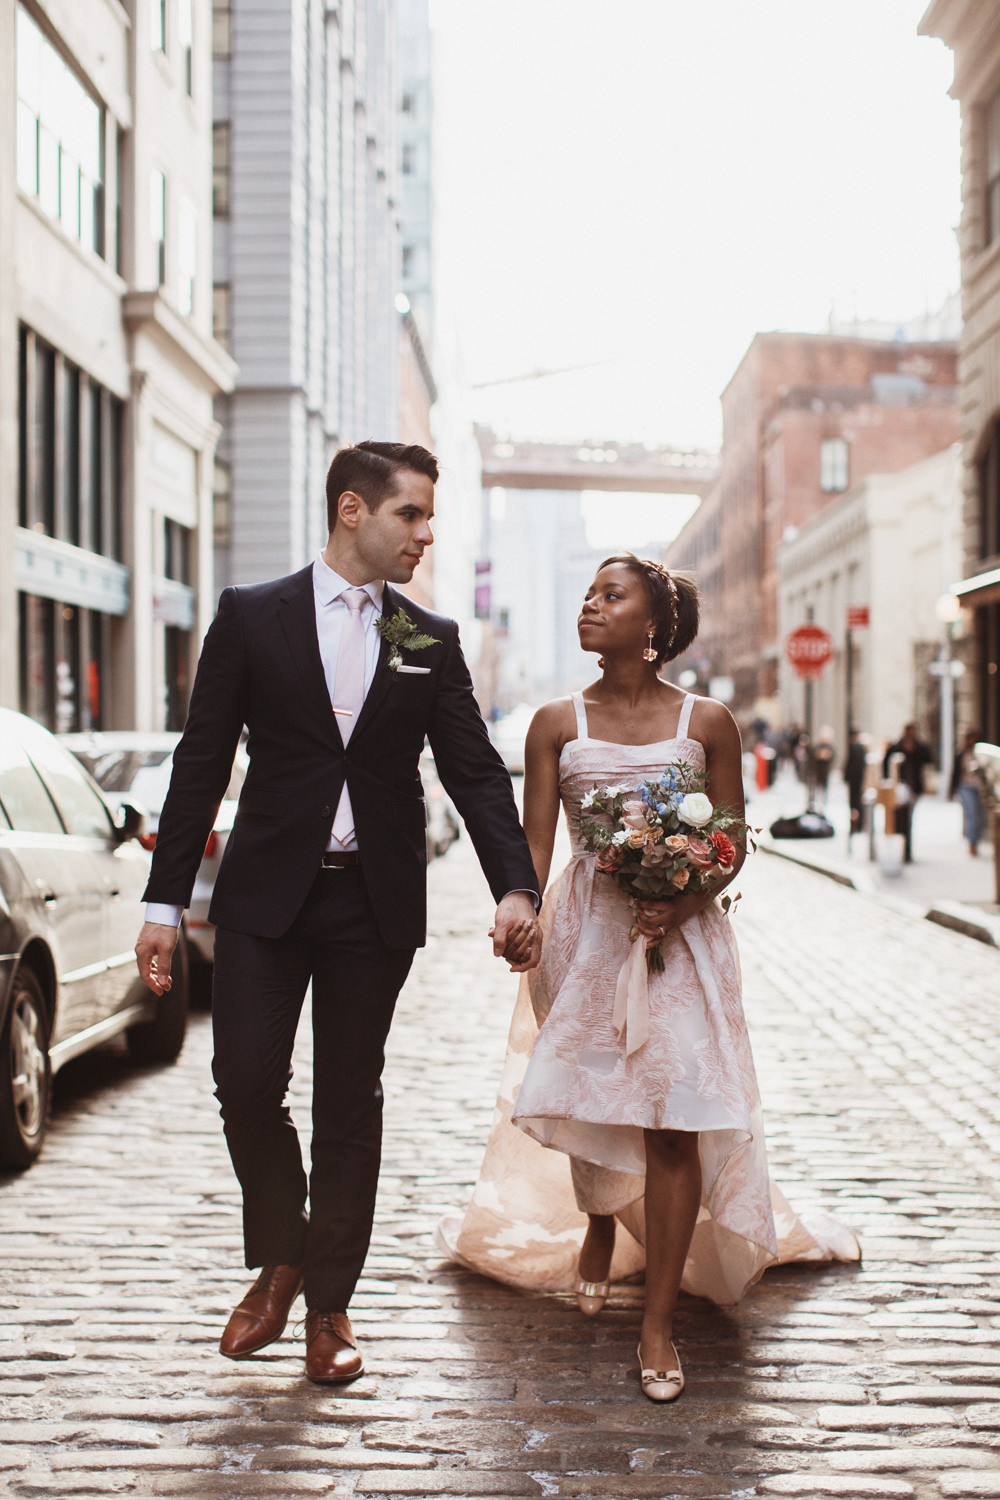 Couple walks down stone streets hand in hand for wedding photos in DUMBO Brooklyn